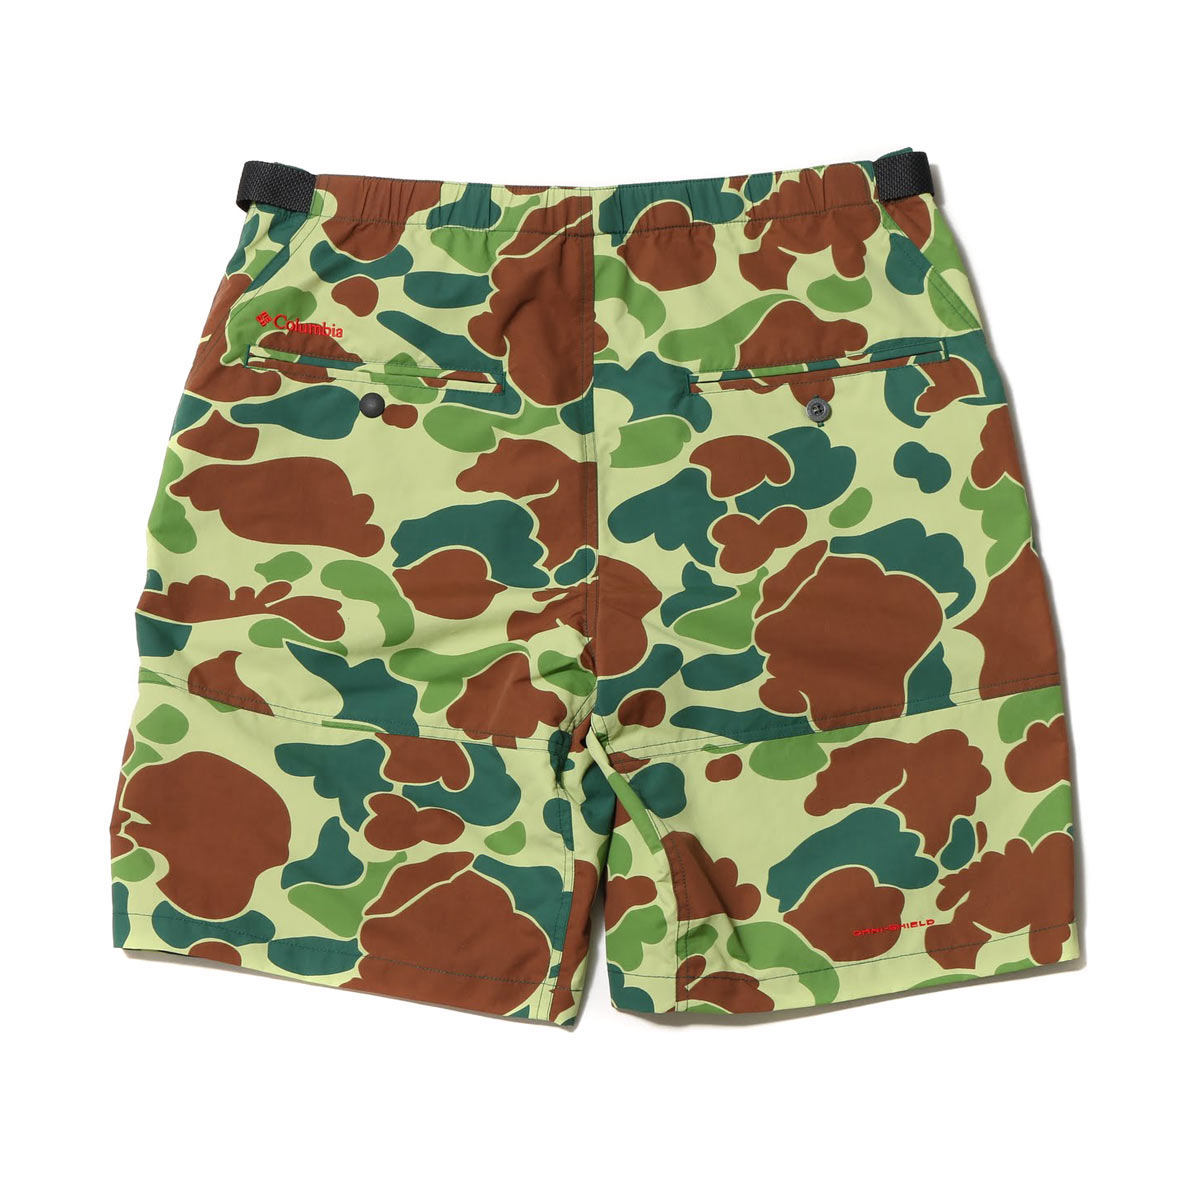 Columbia ATMOS LAB Pliny Peak(TM) Short (Columbian atto- MOS laboratory pre-knee peak (TM) short) two colors development 17SS-S